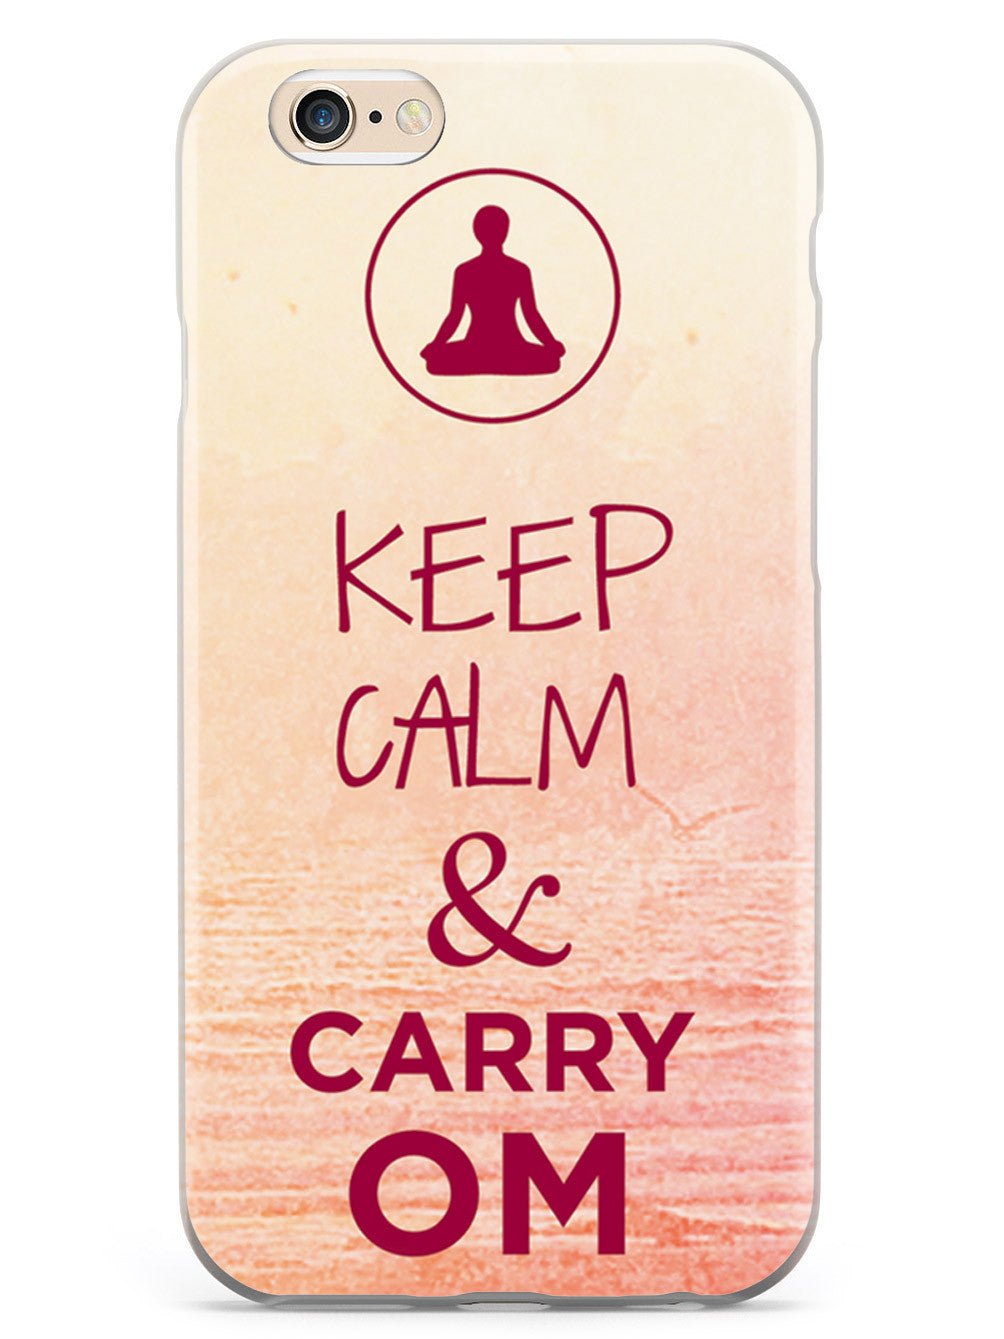 Keep Calm & Carry Om - Yoga Humor Funny Case